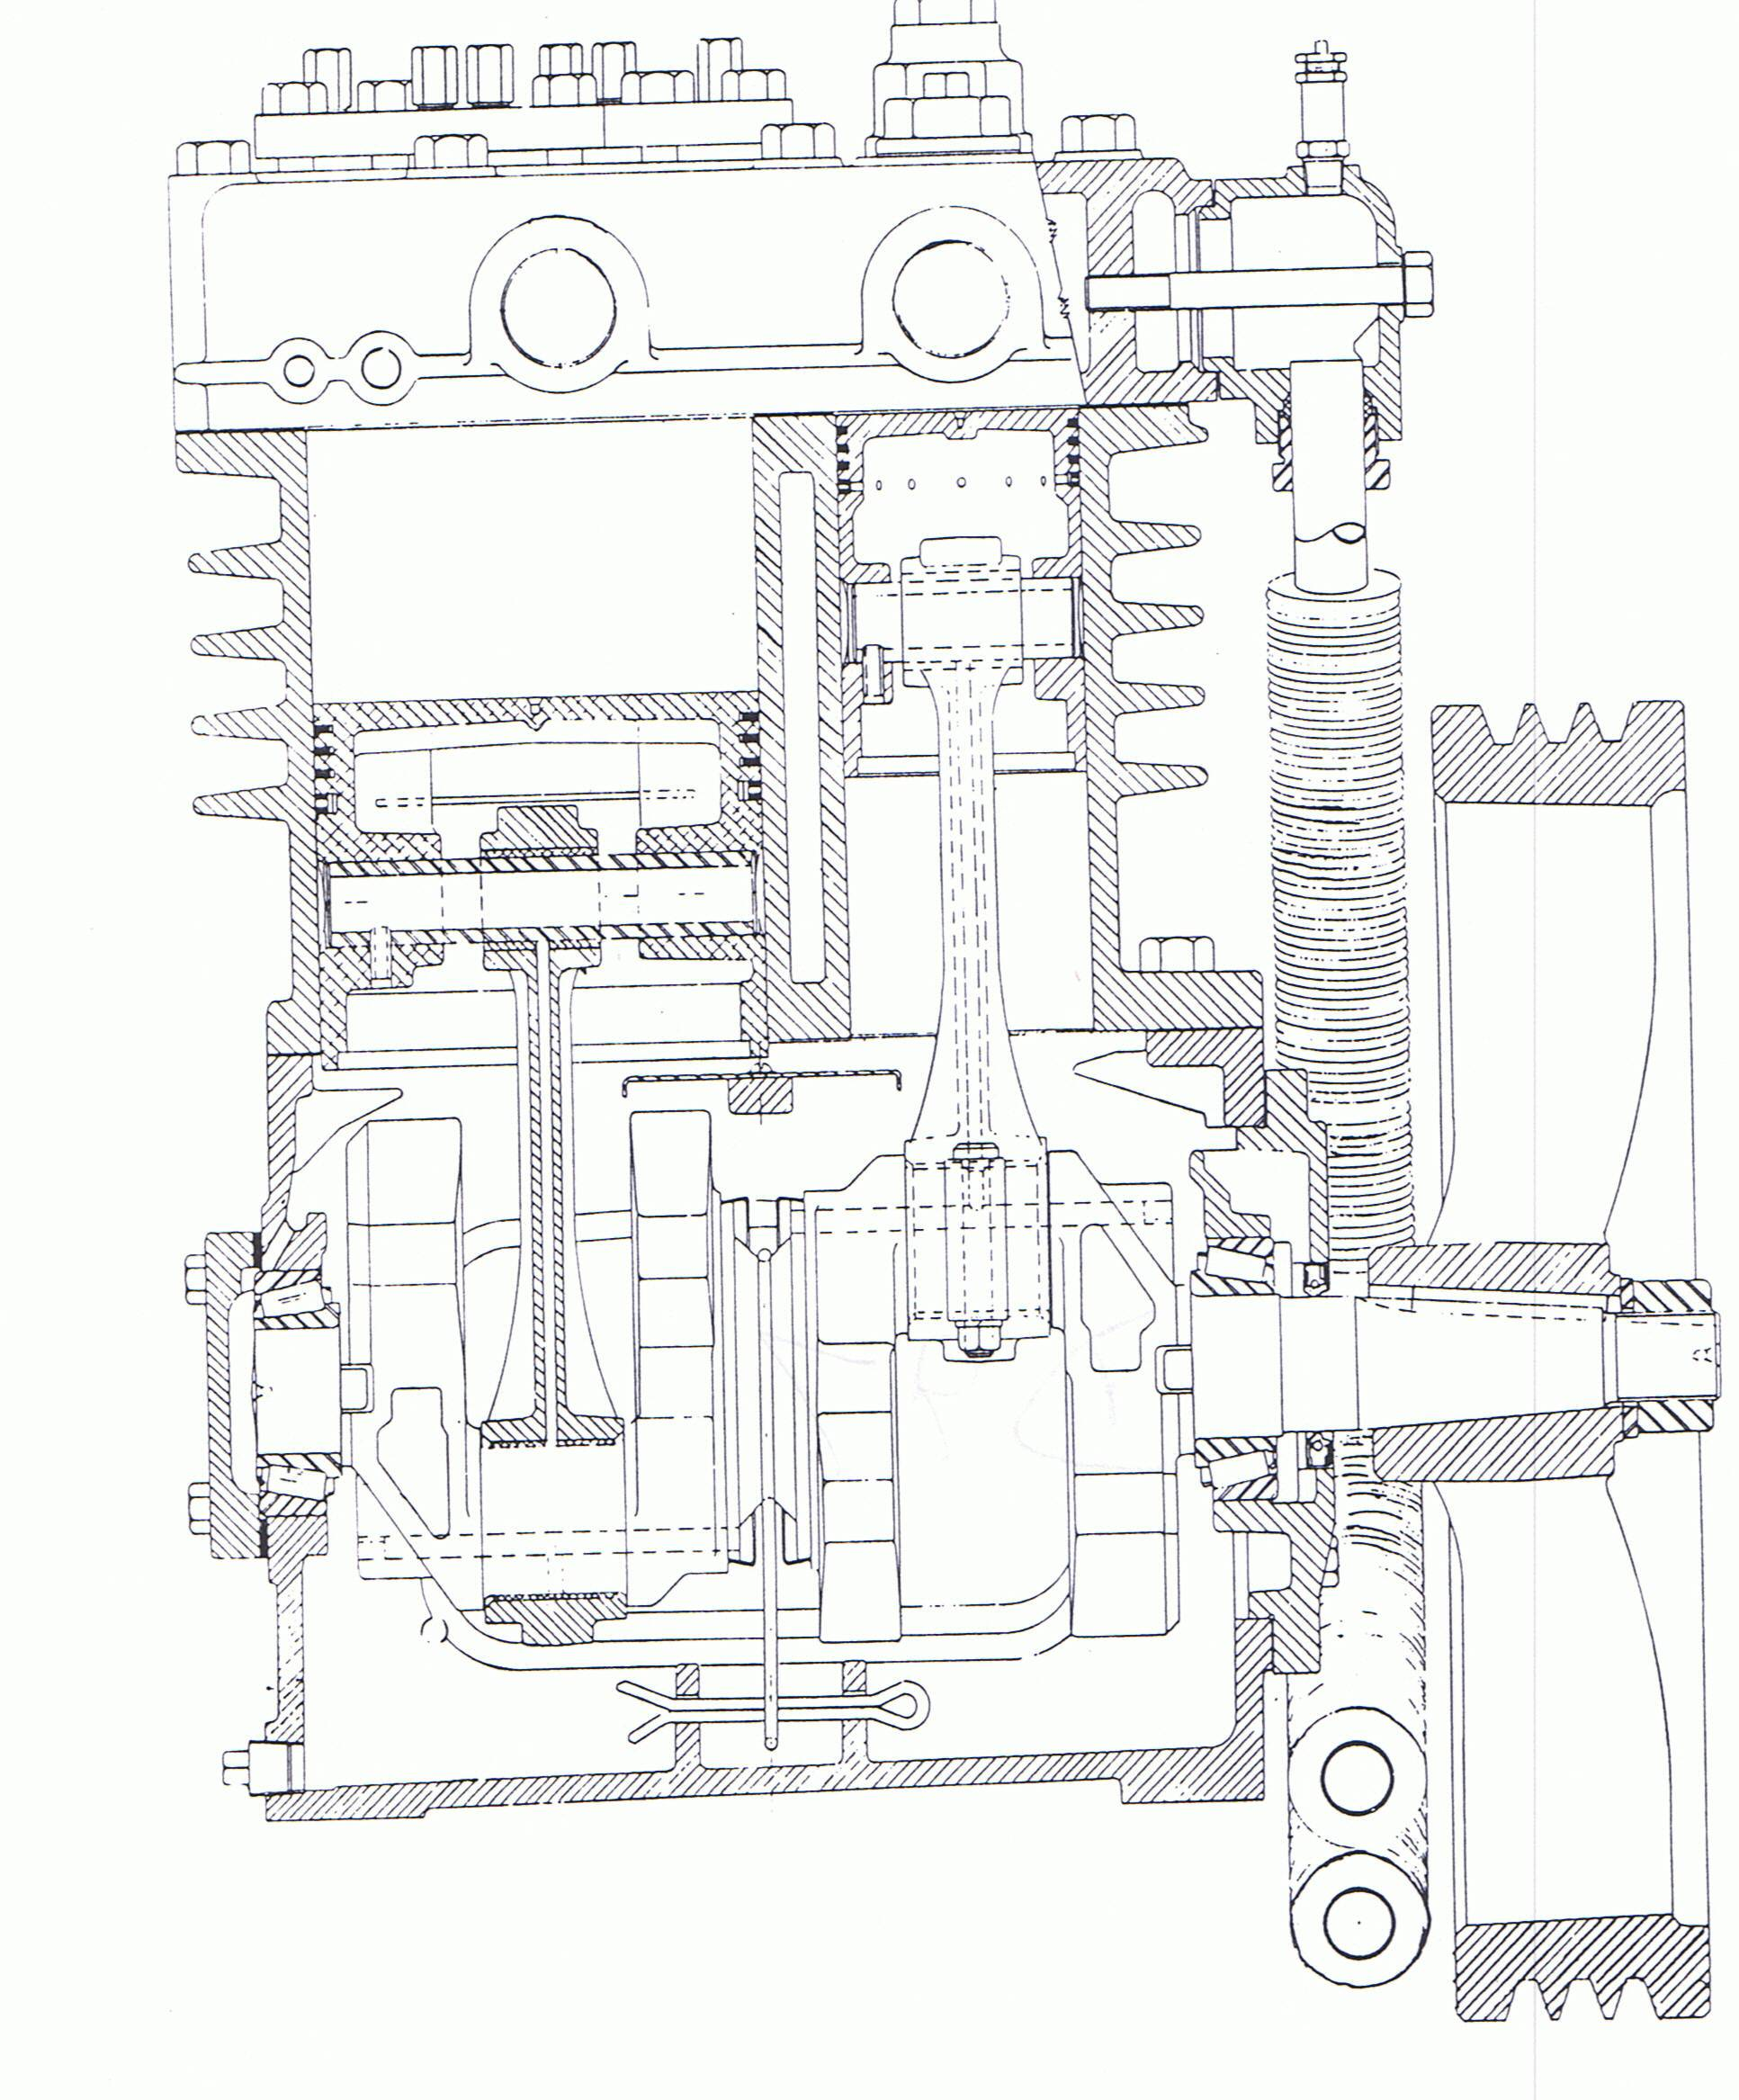 hight resolution of air flo inc air compressor parts and supplies from ingersoll rand rh airfloinc com air compressor motor wiring diagram air compressor wiring diagram